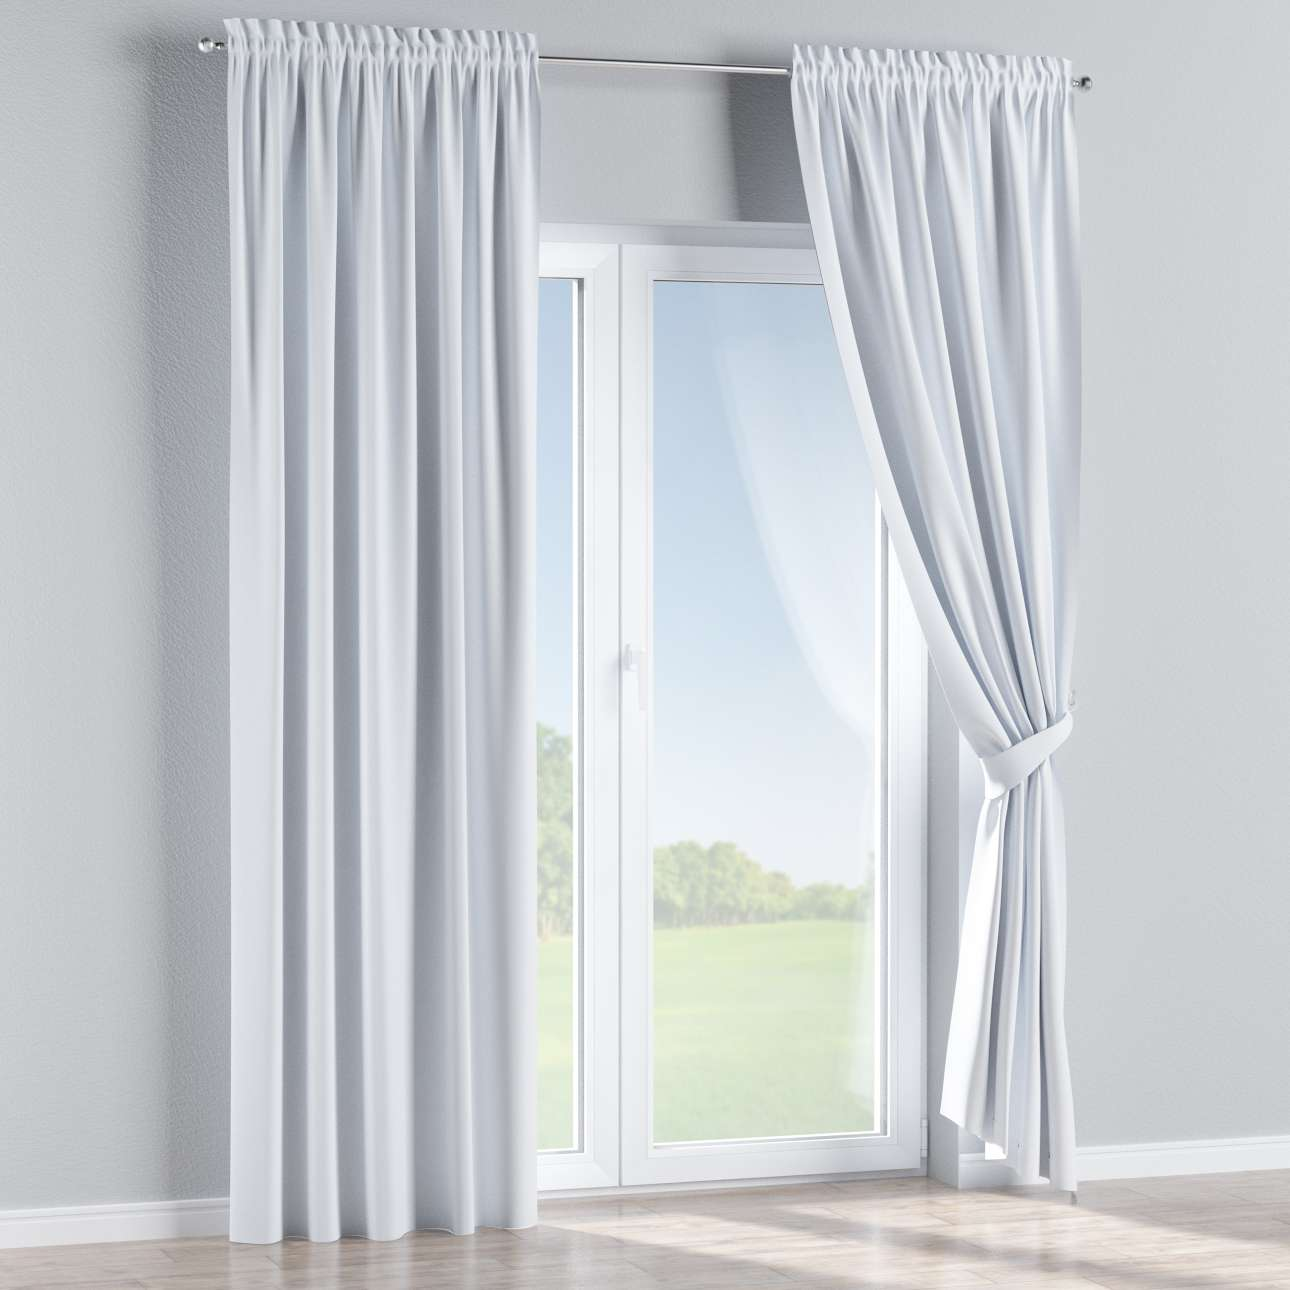 Blackout slot and frill curtains in collection Blackout, fabric: 269-01